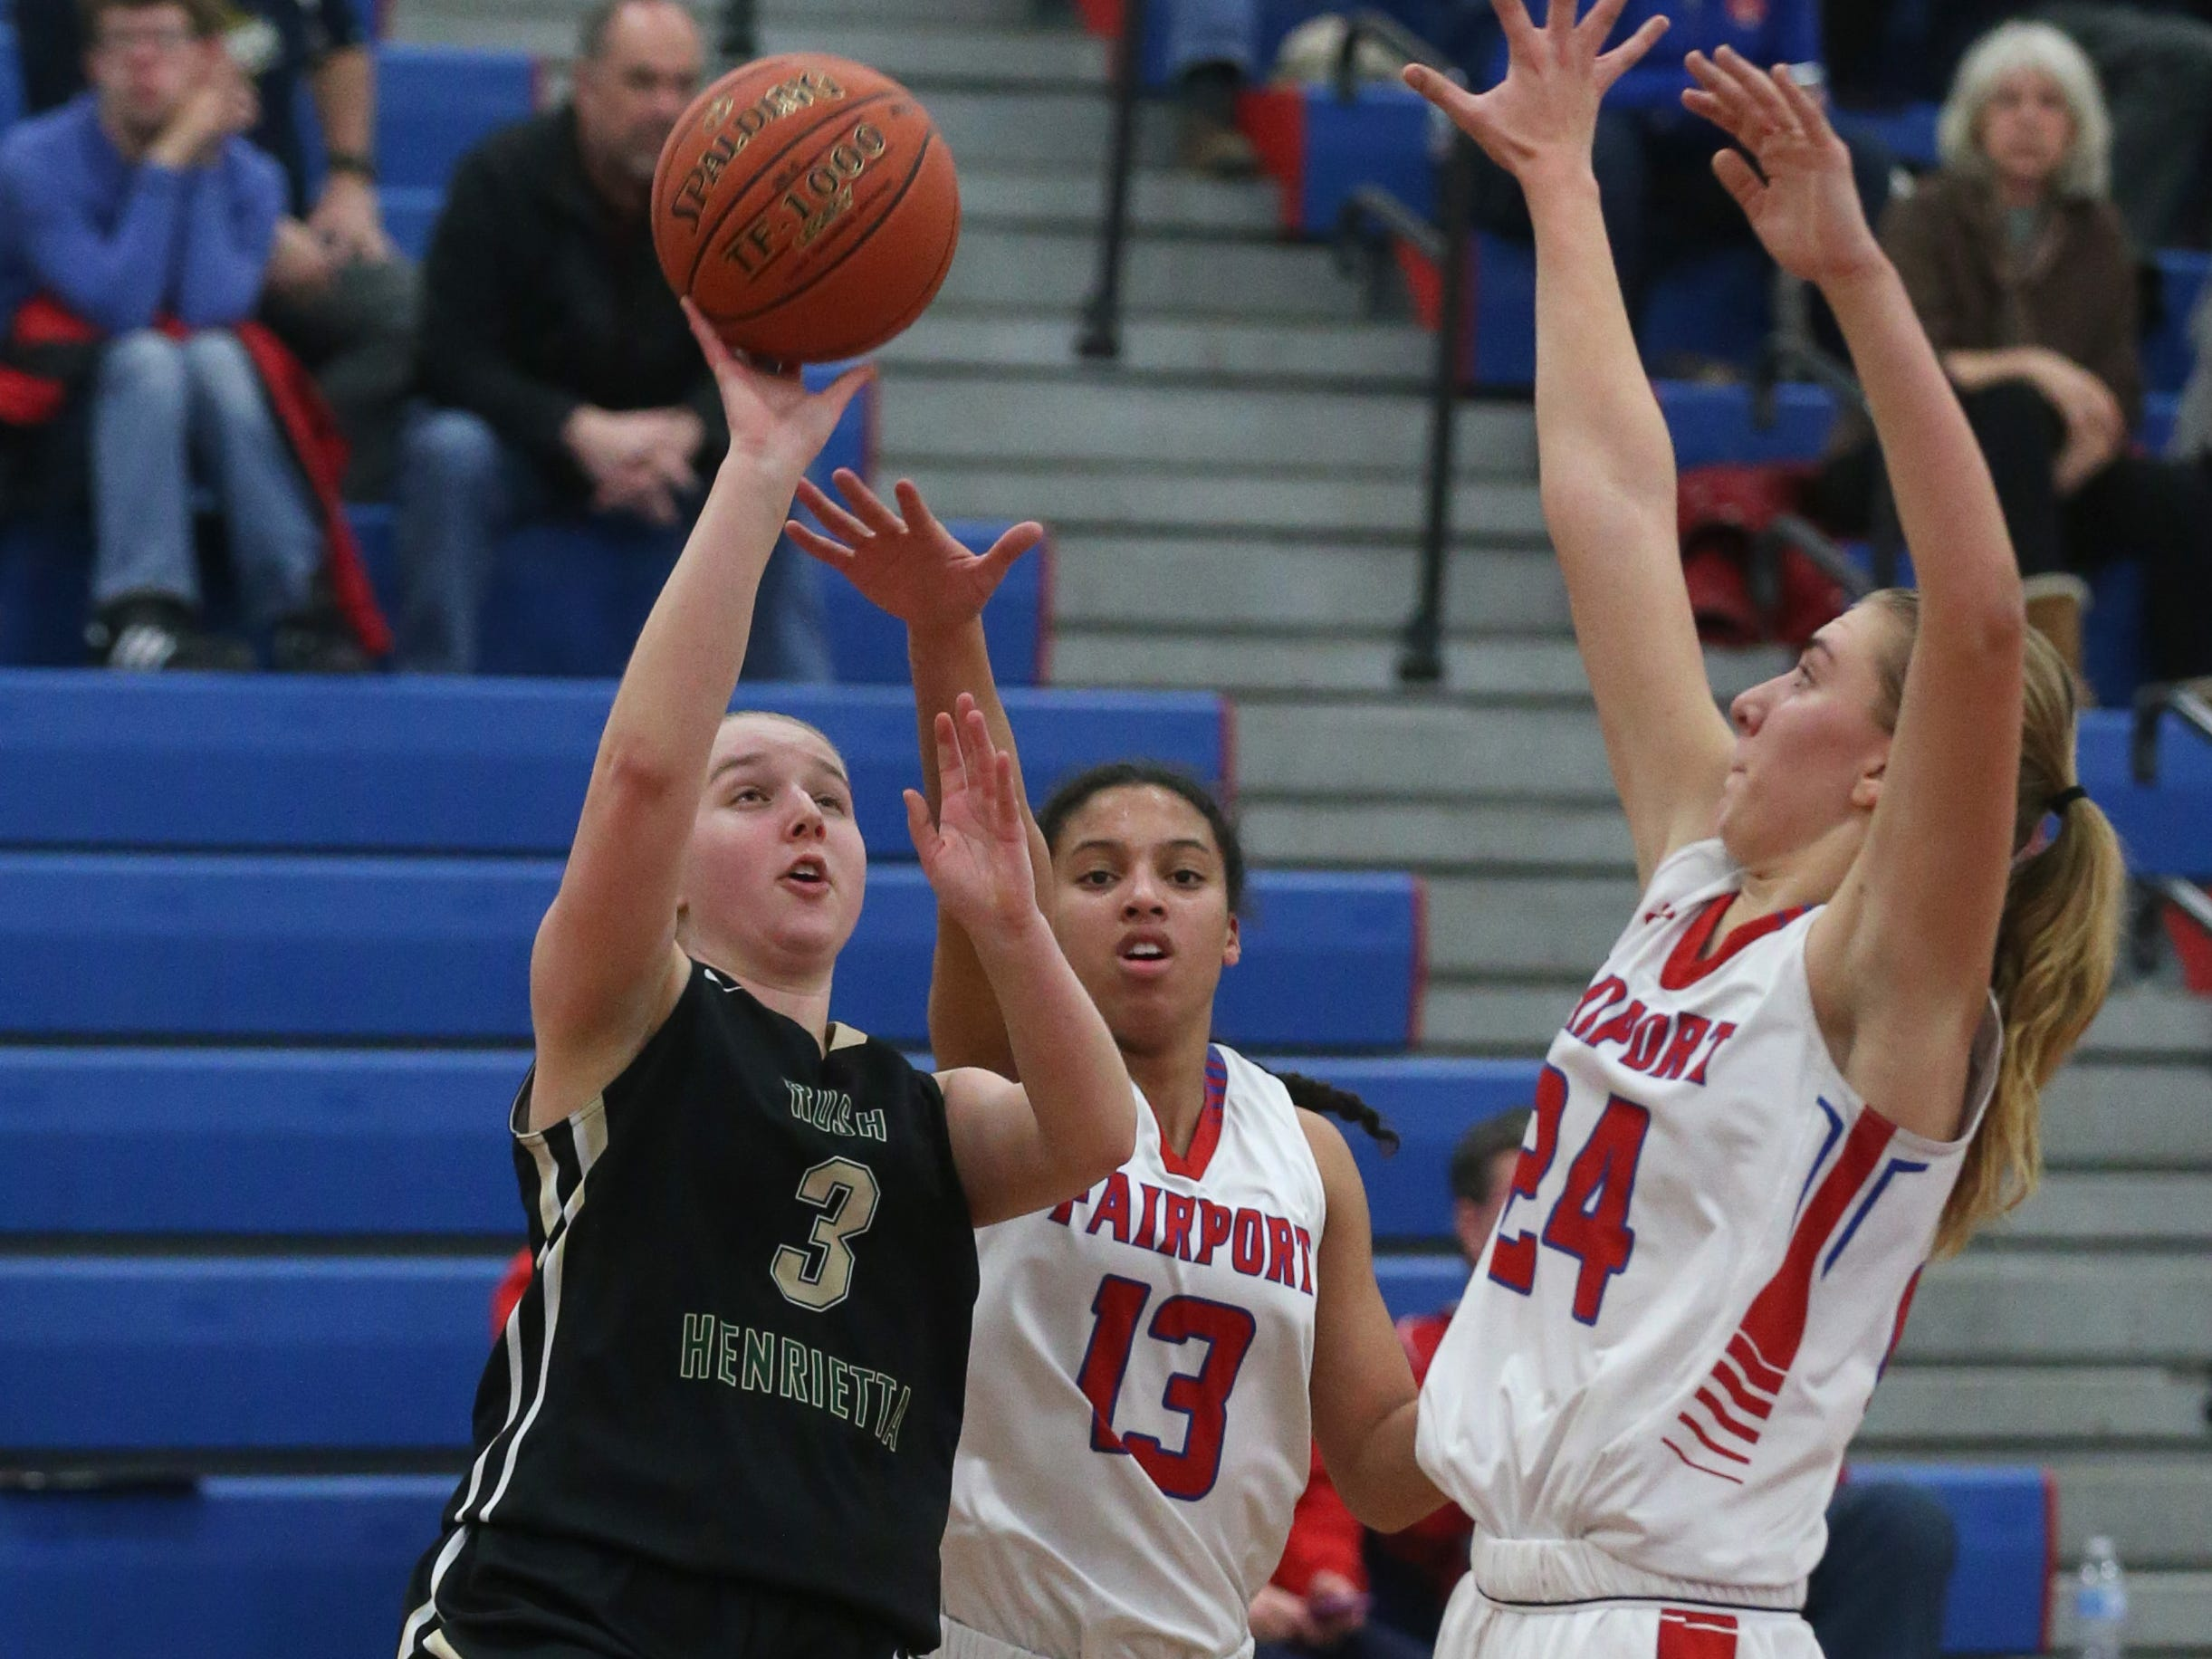 Rush-Henrietta's Logan Taylor, left, puts up a running shot as Fairport's Ella Meabon, center, and Riley DeRue, right, defend.